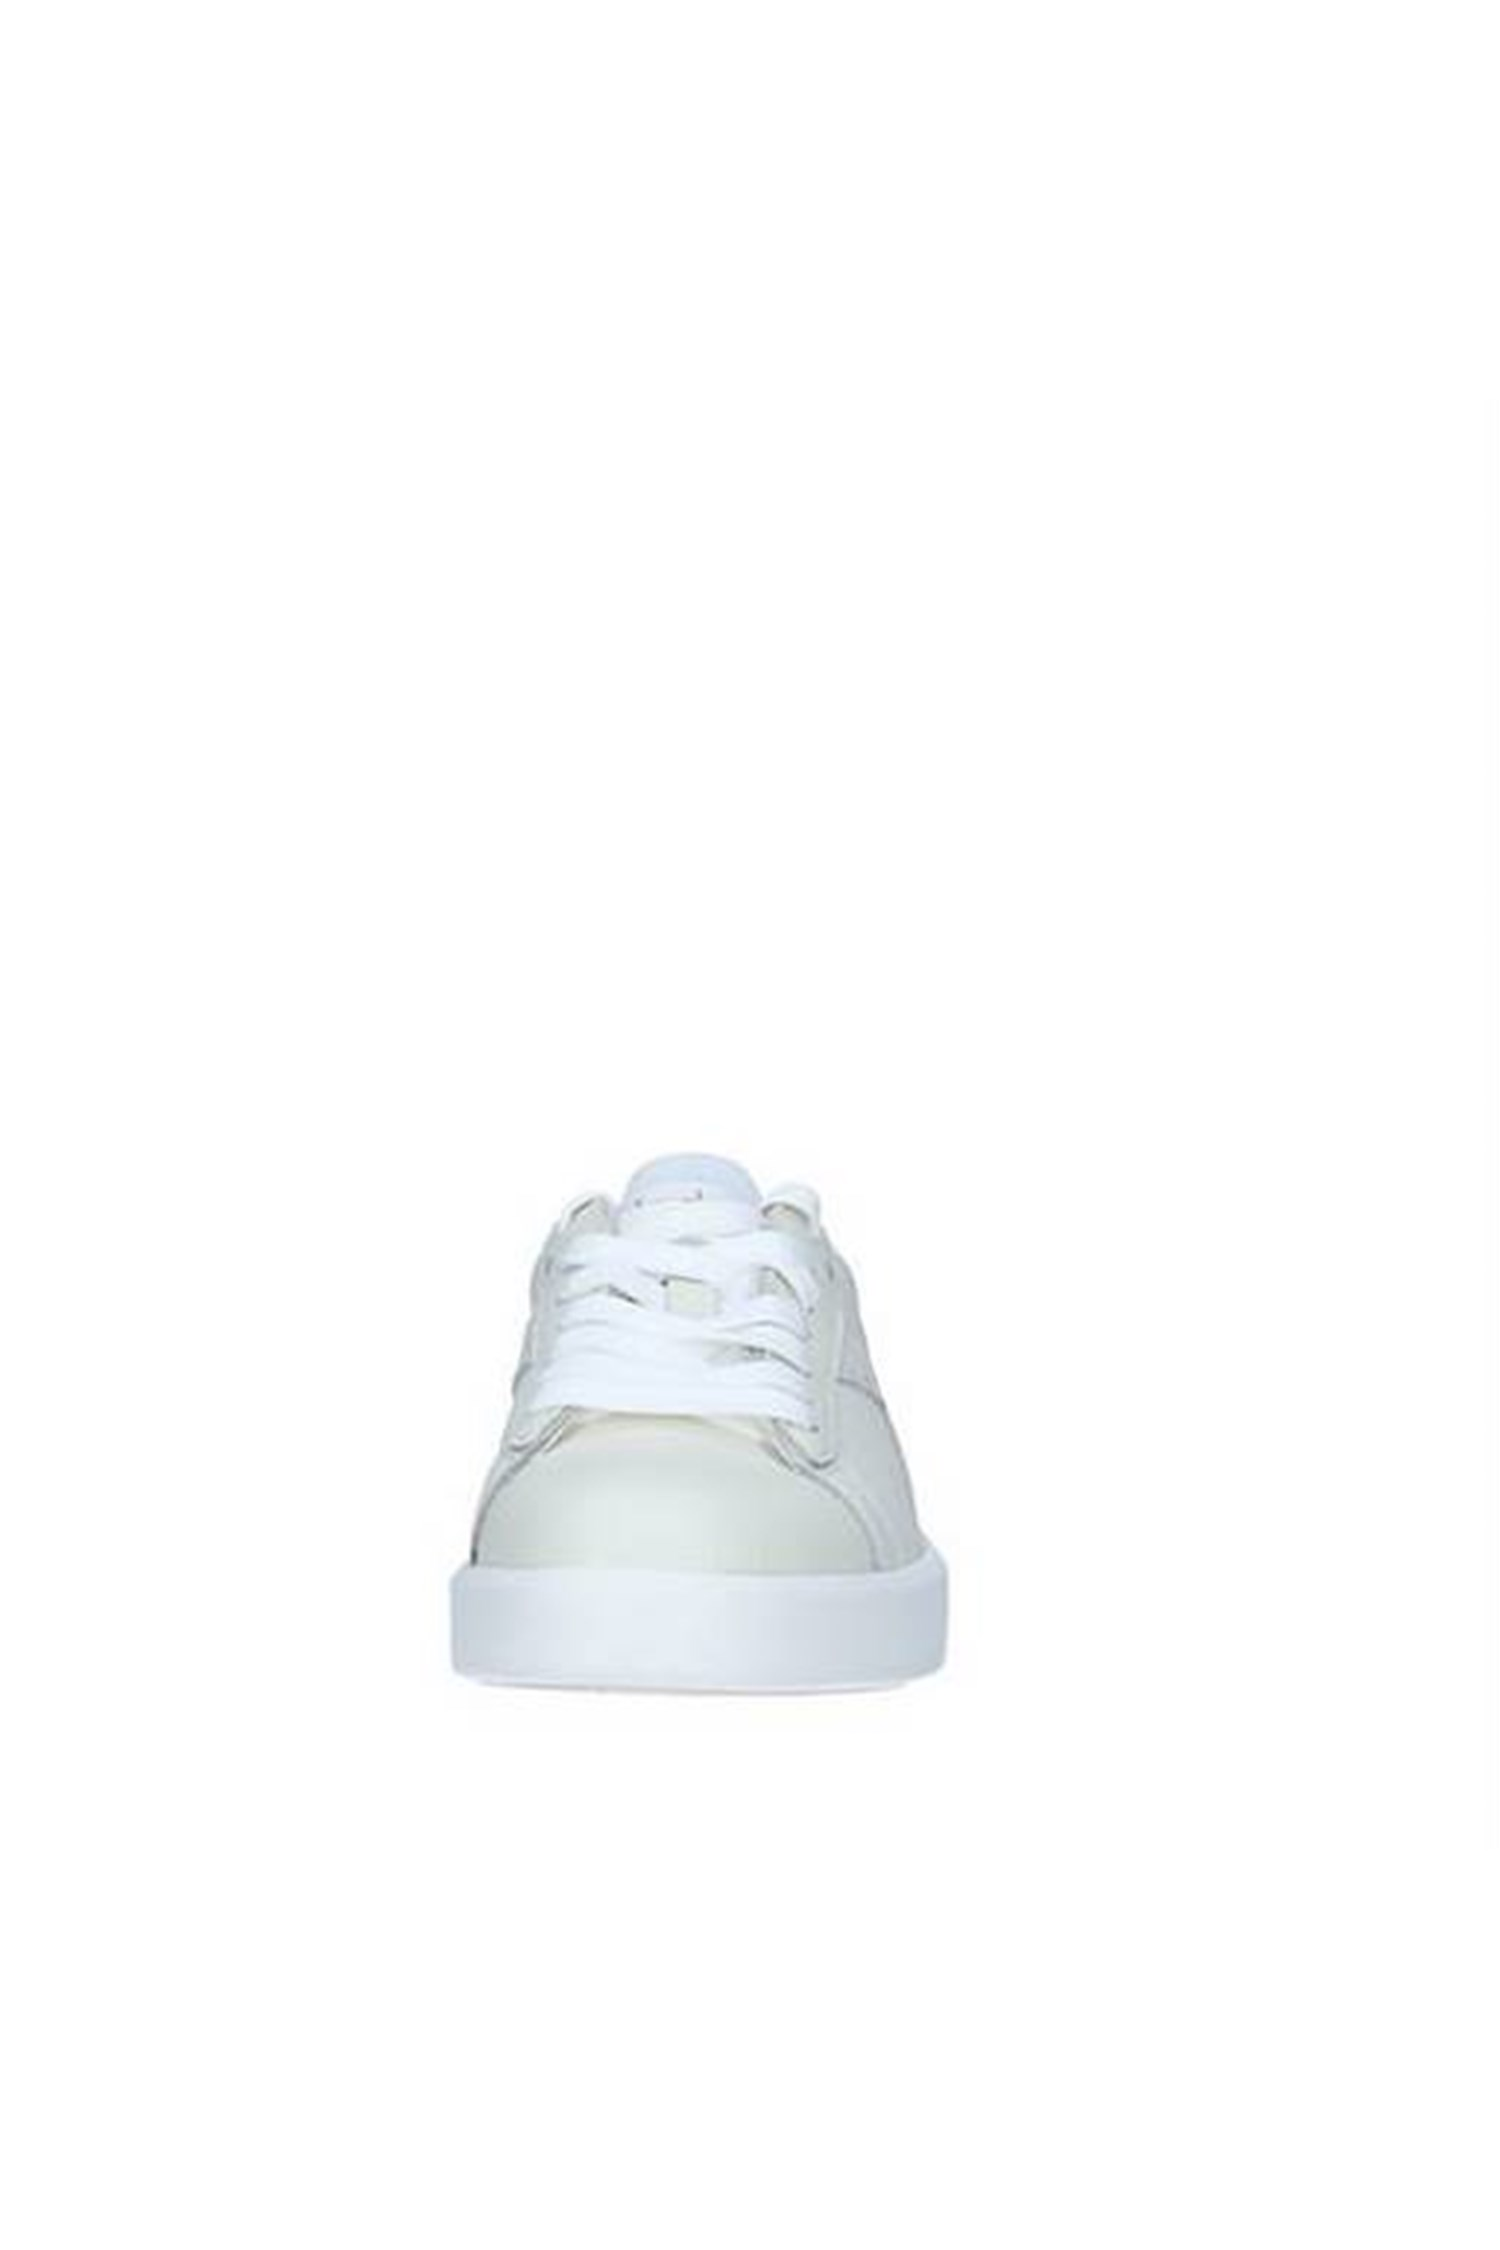 Diadora Shoes Man low WHITE 501.173087